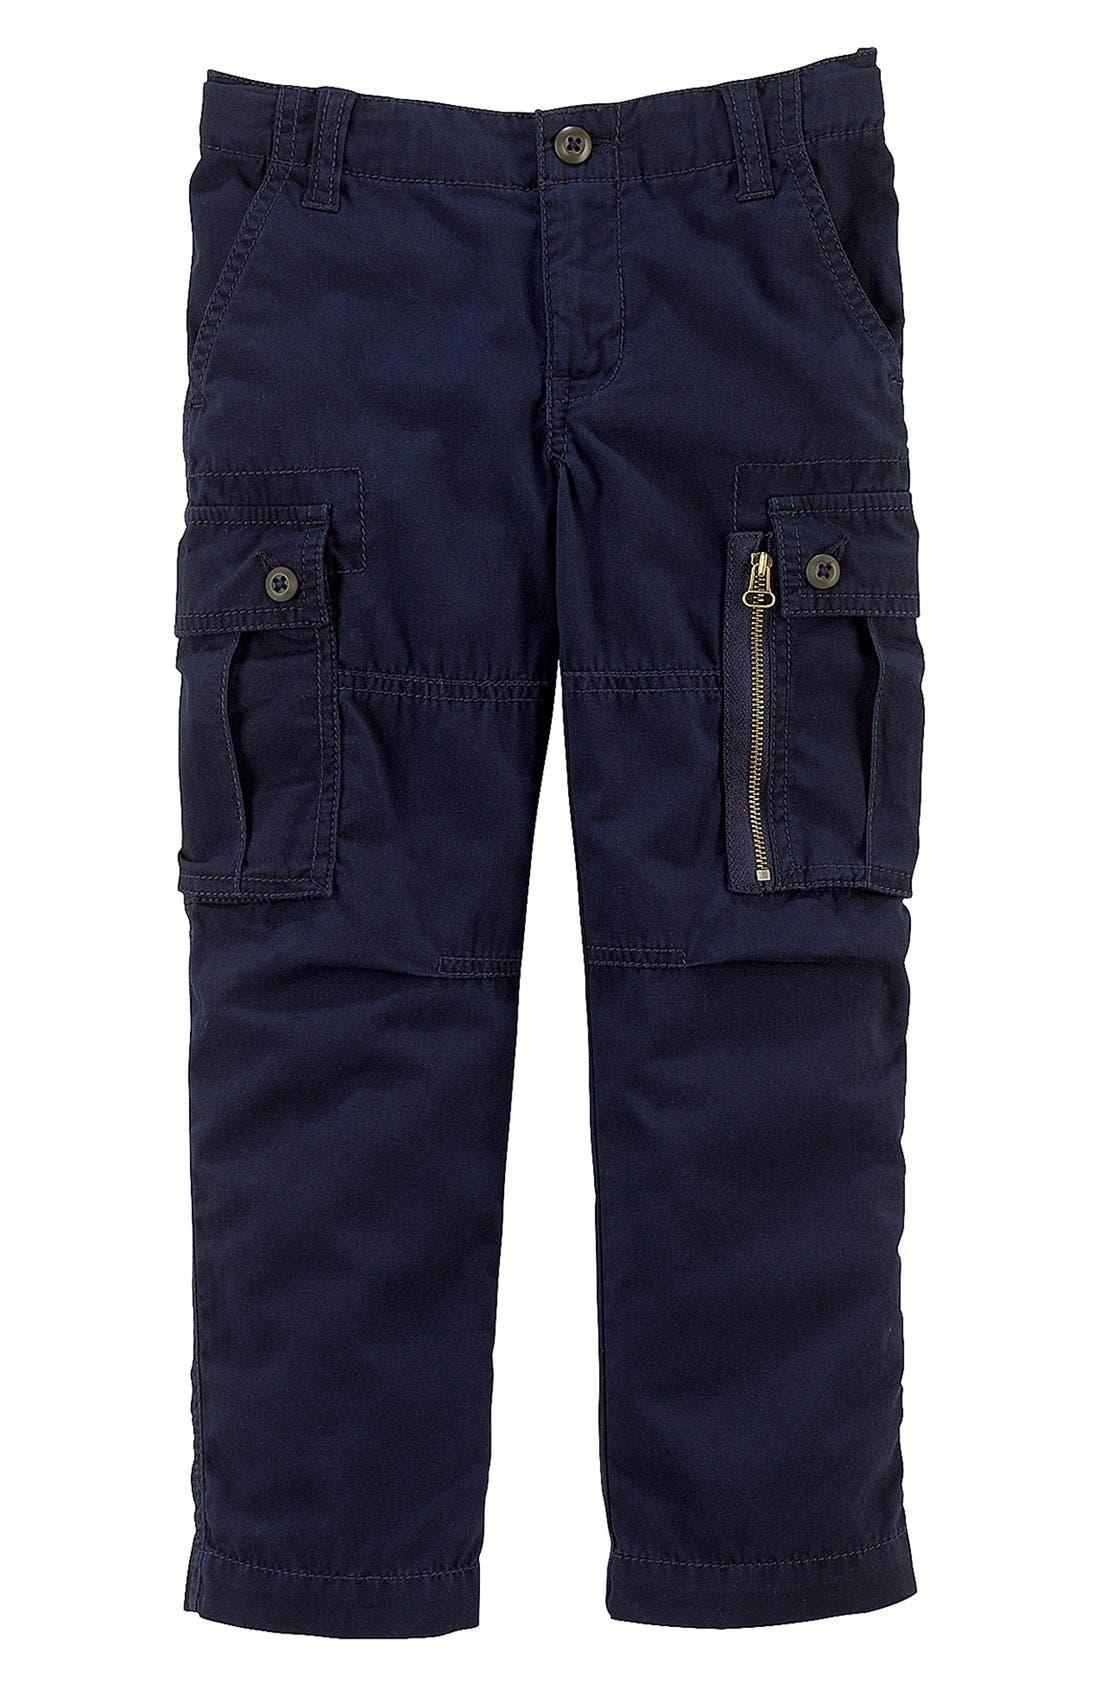 Main Image - Ralph Lauren Cargo Pants (Toddler Boys)